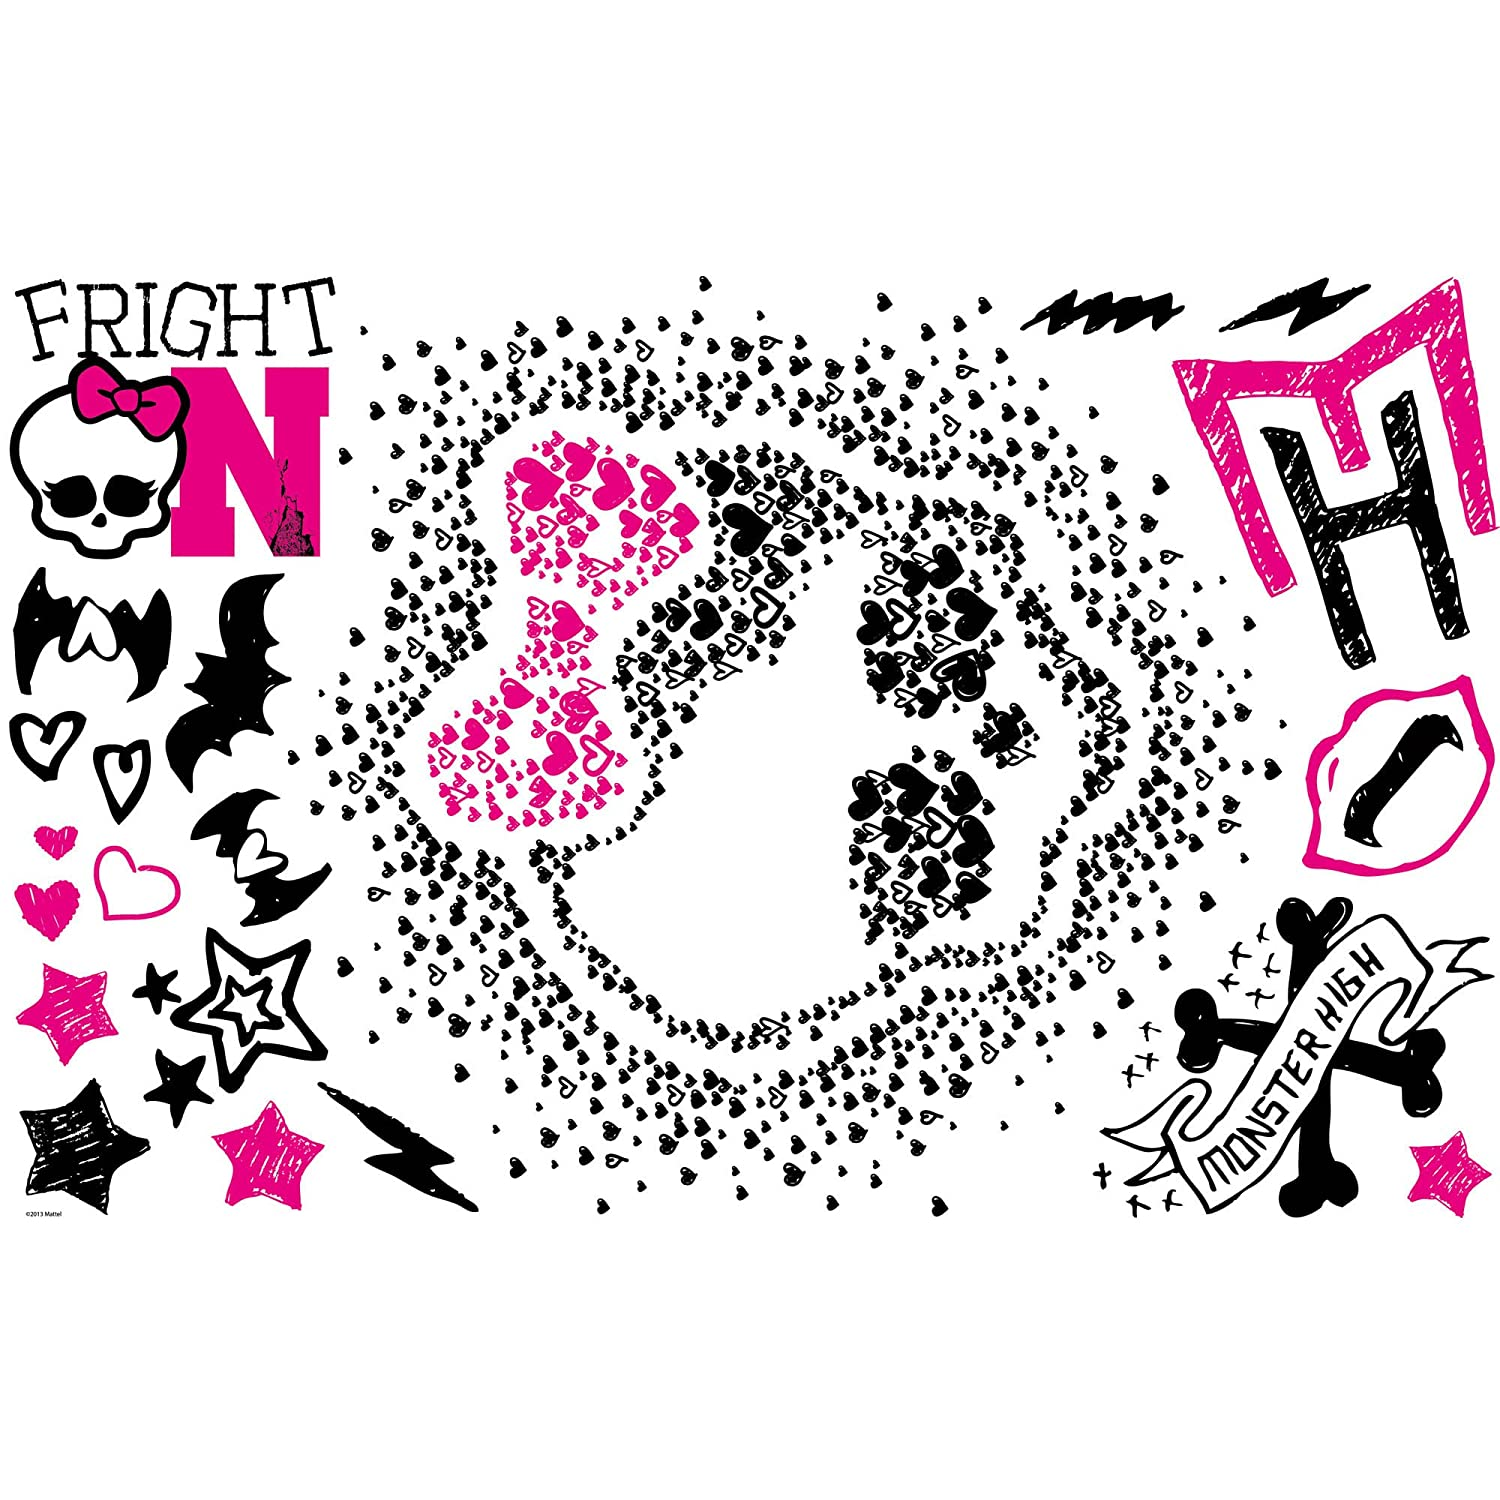 Roommates Rmk2258Slm Monster High Heart Skullette Peel And Stick Wall  Decals   Decorative Wall Appliques   Amazon com. Roommates Rmk2258Slm Monster High Heart Skullette Peel And Stick